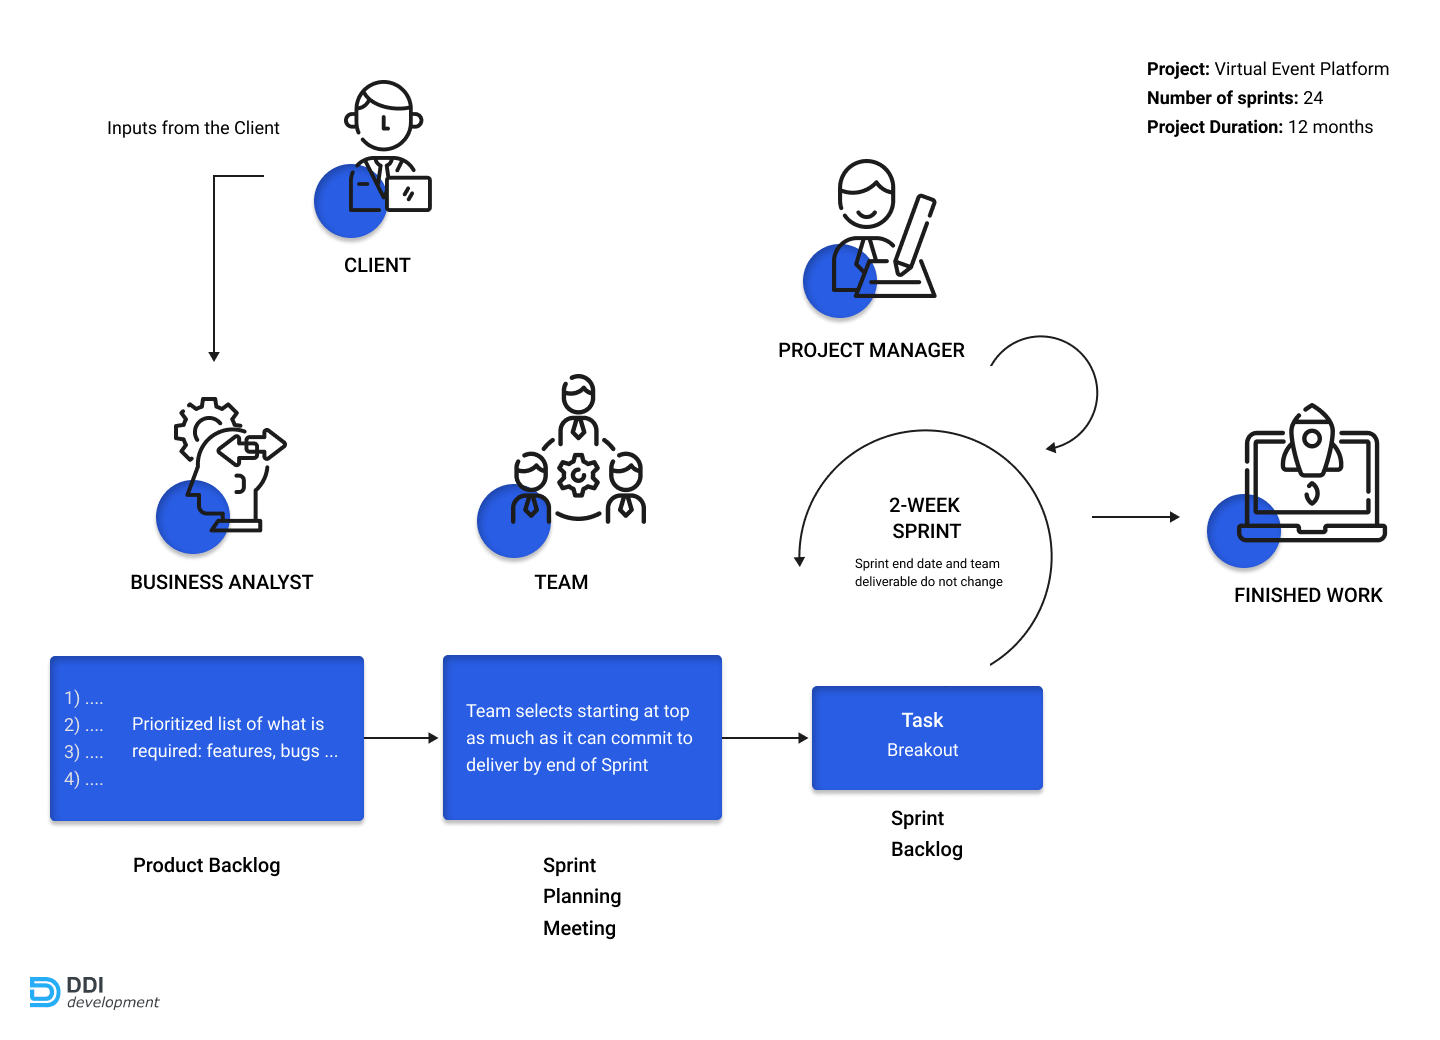 development process of the virtual event platform